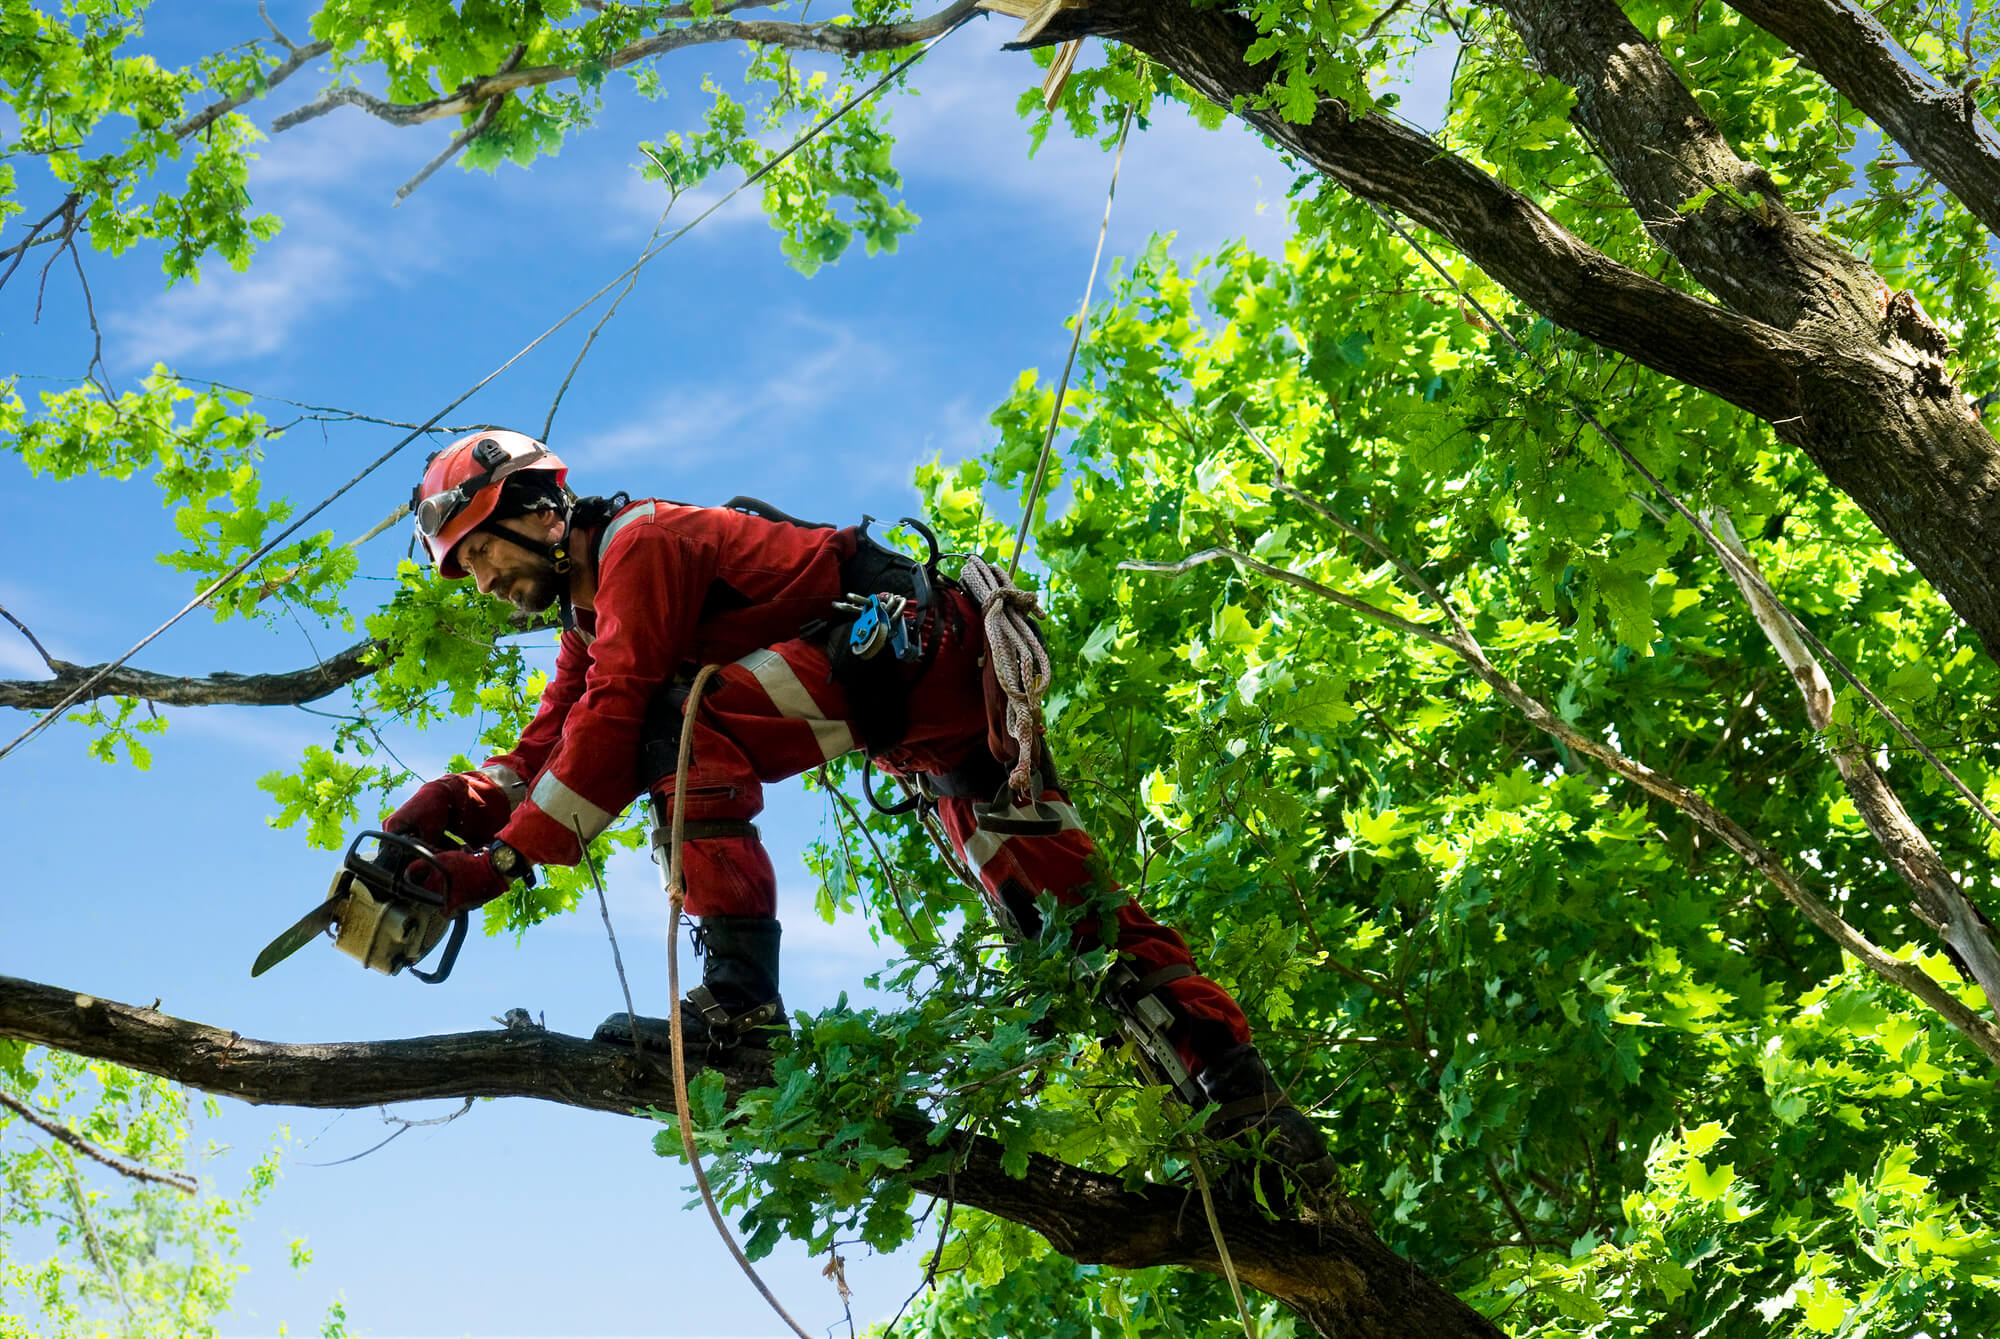 Laplace tree service company - Big Easy Tree Removal